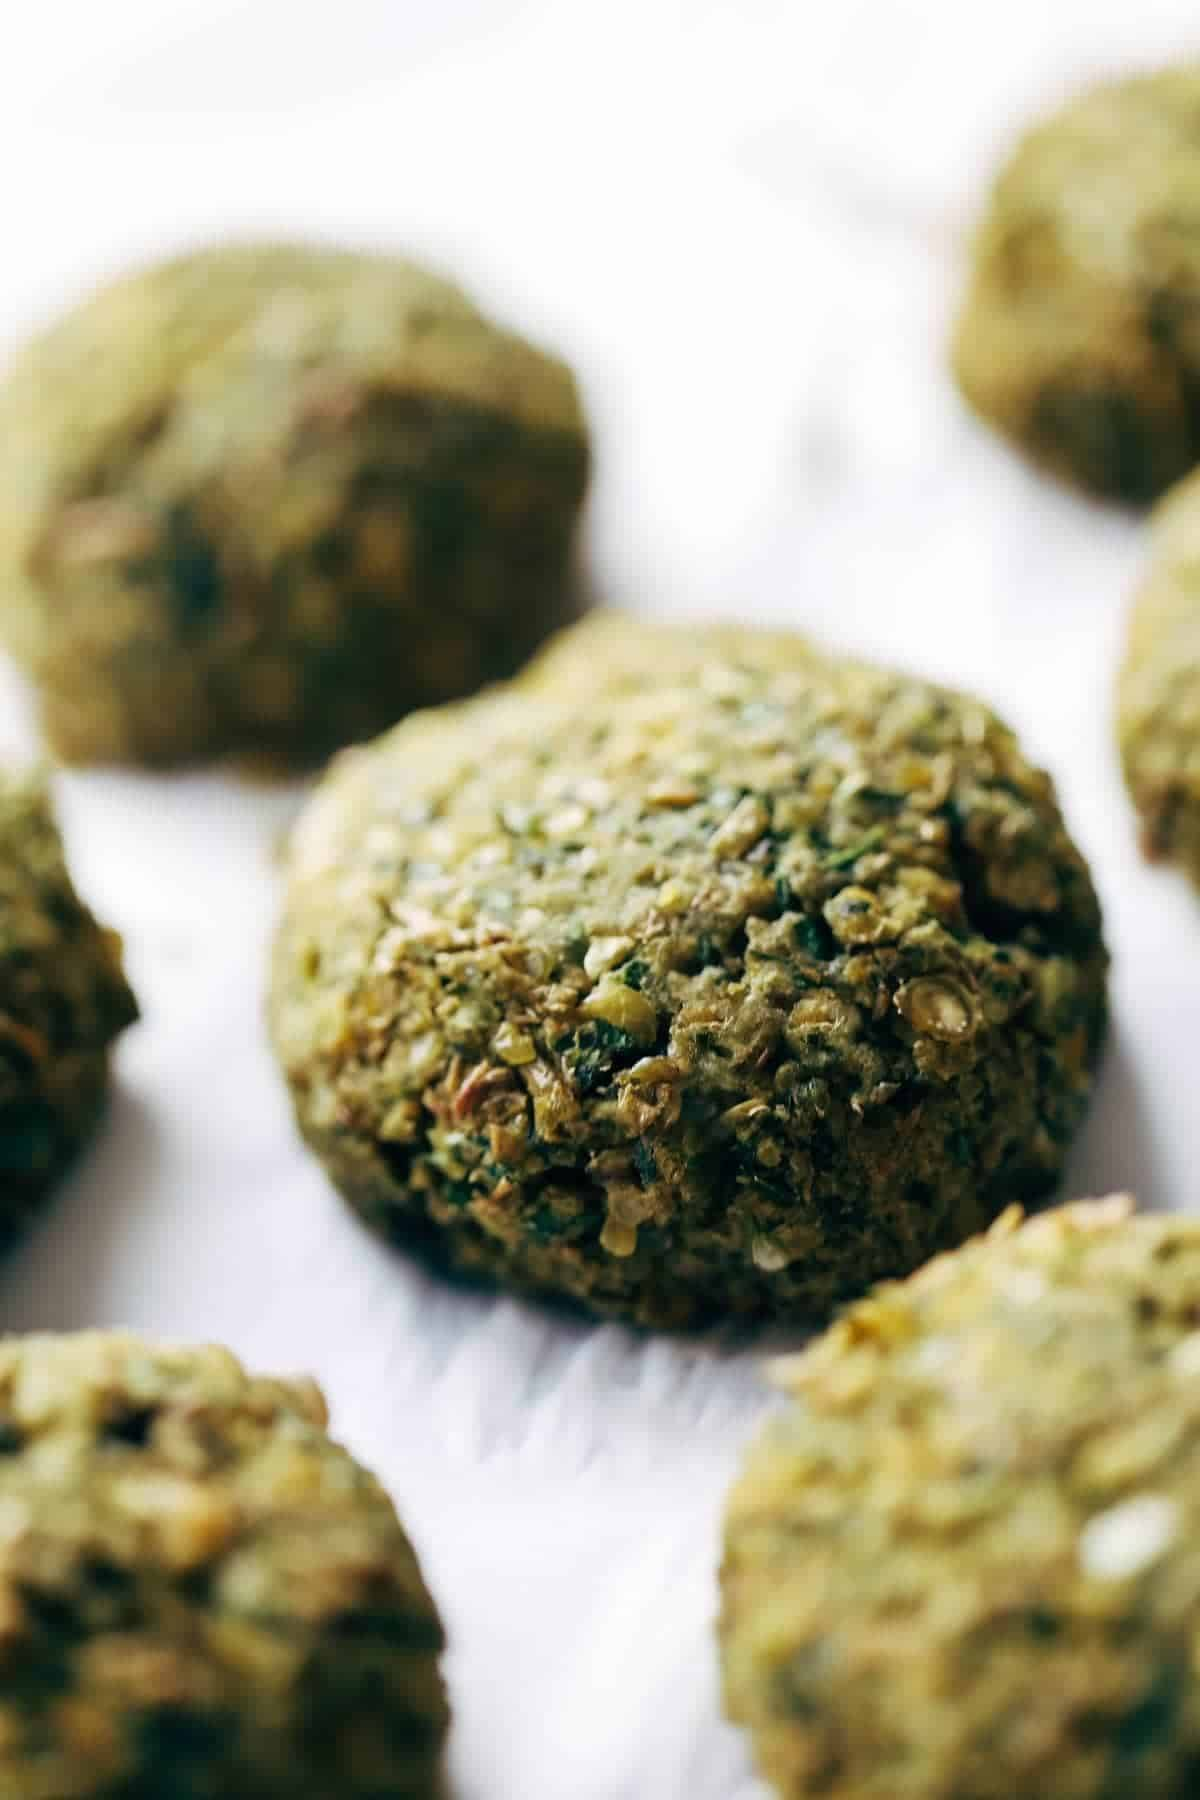 Easy falafel at home in 30 minutes WITHOUT deep frying! Use in salads, sandwiches, and other healthy recipes. Vegetarian / Vegan / Gluten Free. 70 calories per falafel. | pinchofyum.com